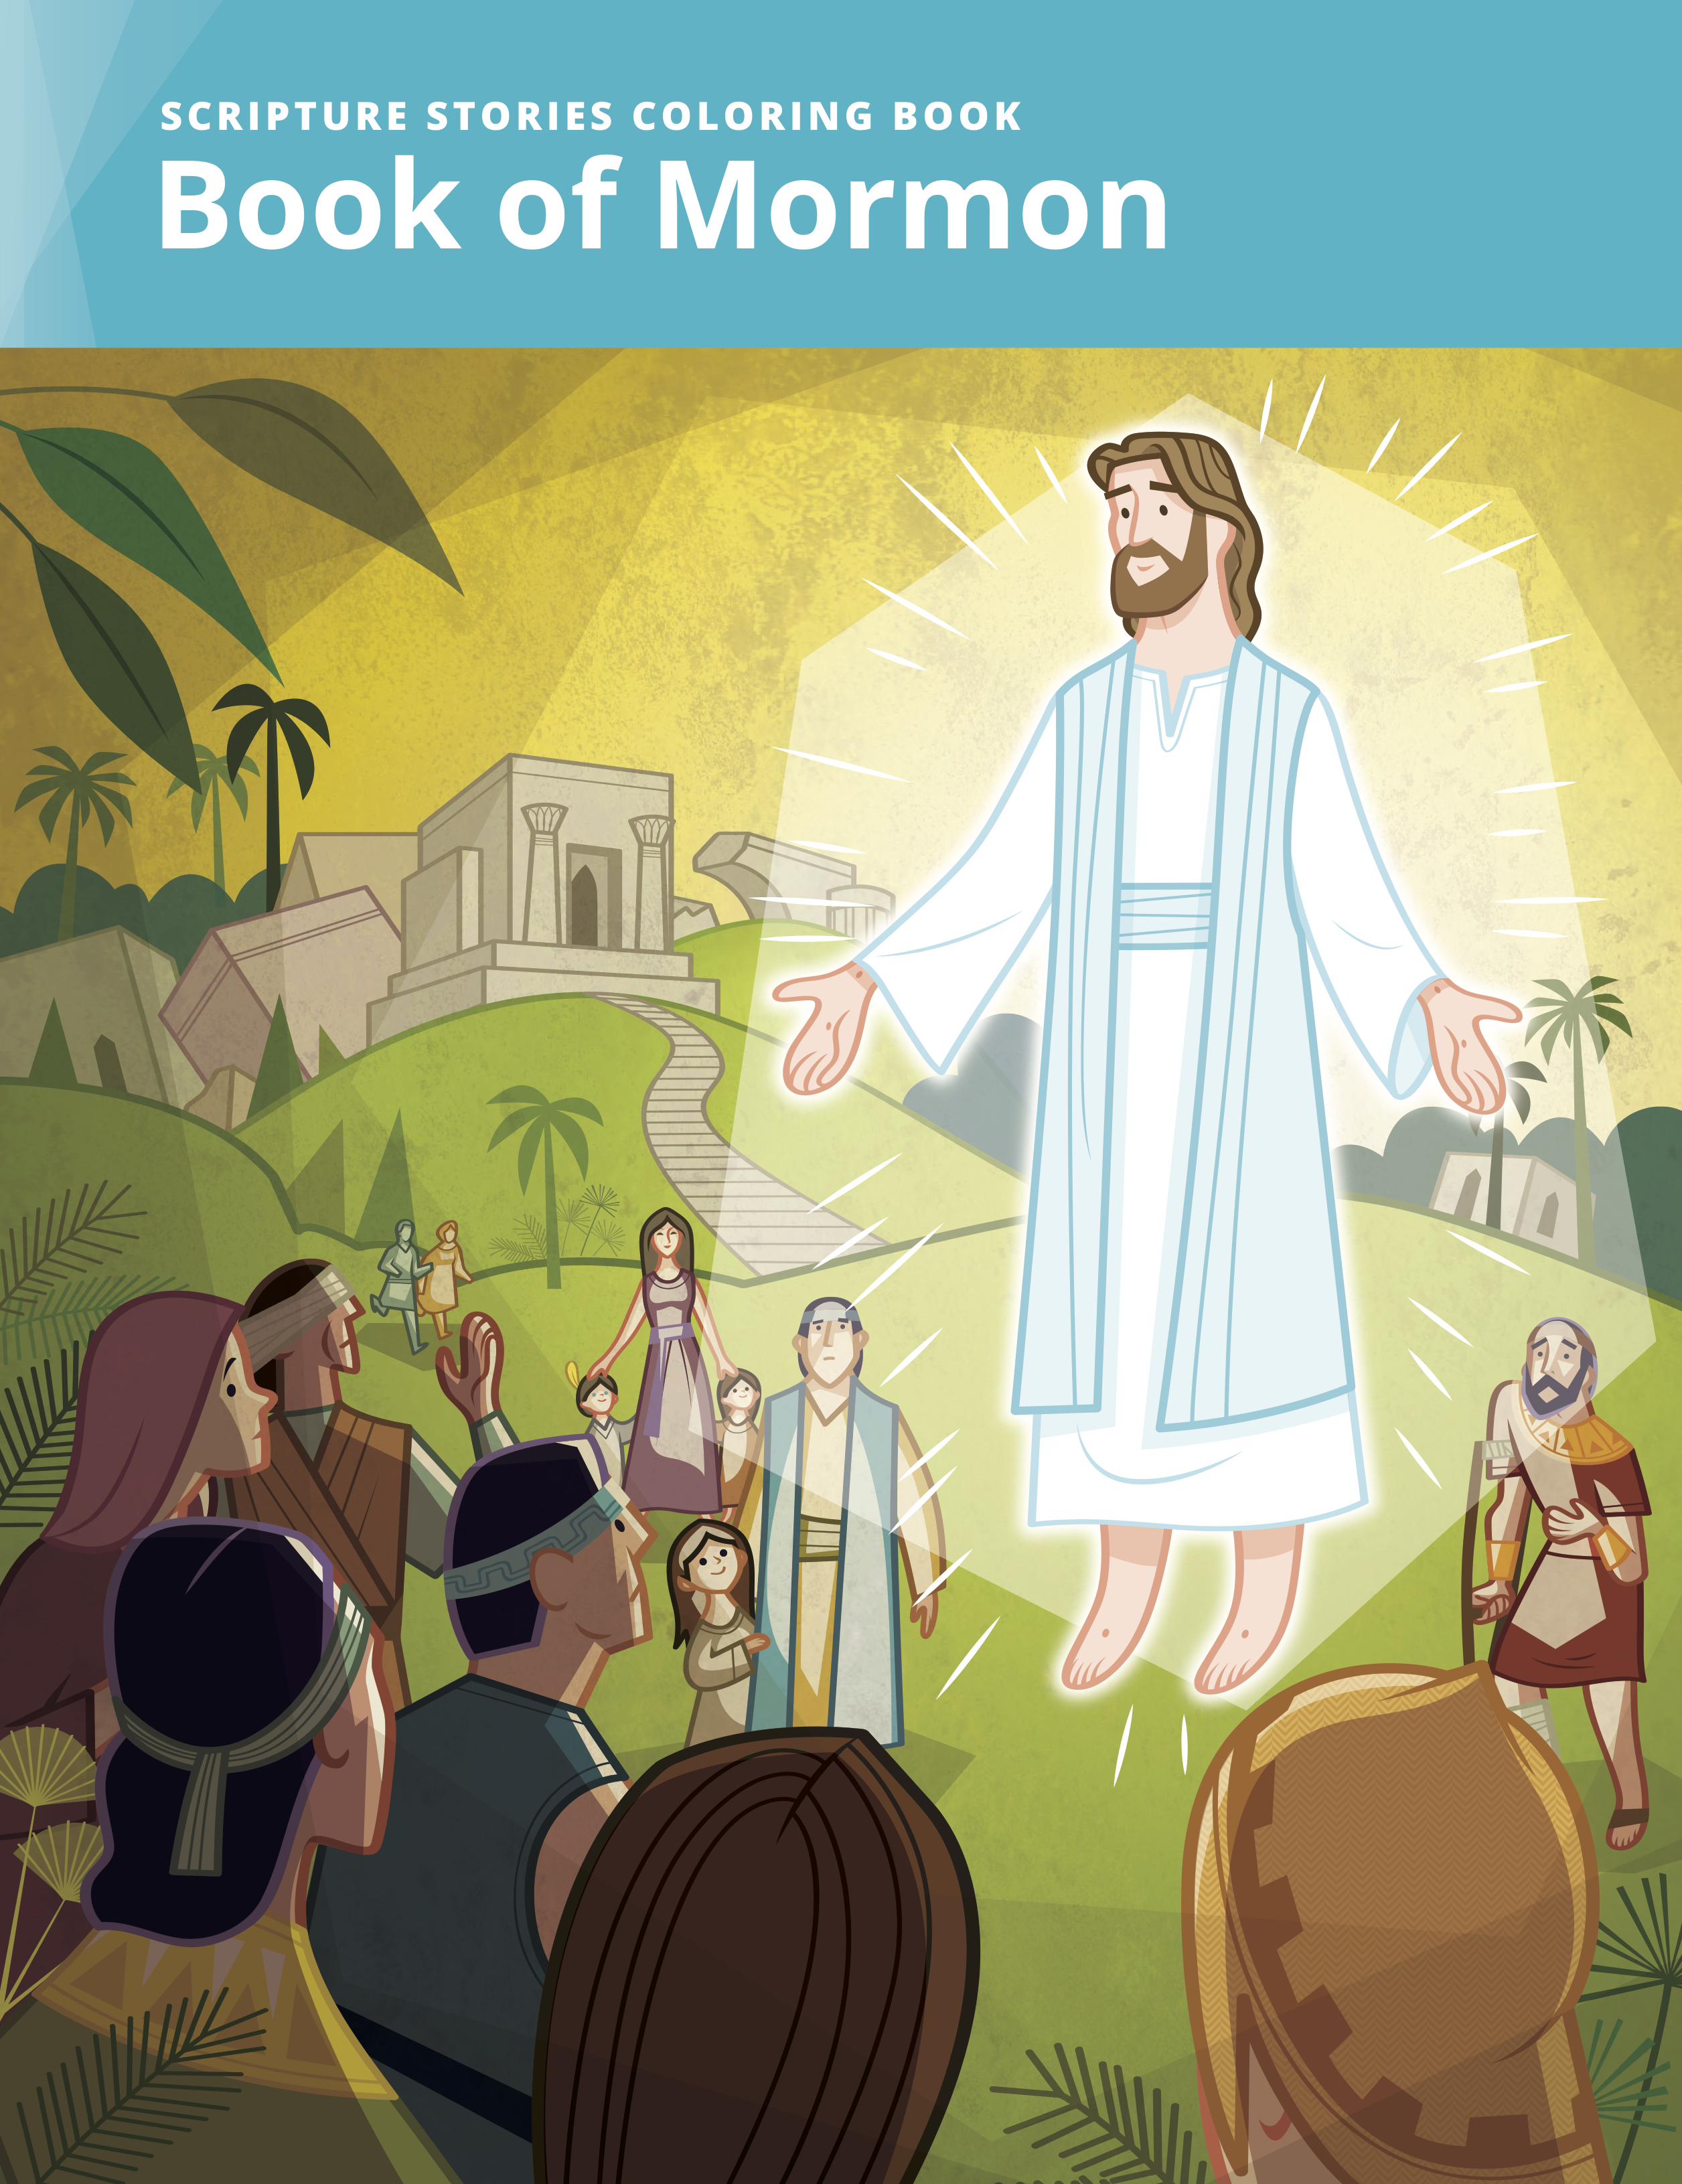 Scripture Stories Coloring Book: Book of Mormon.